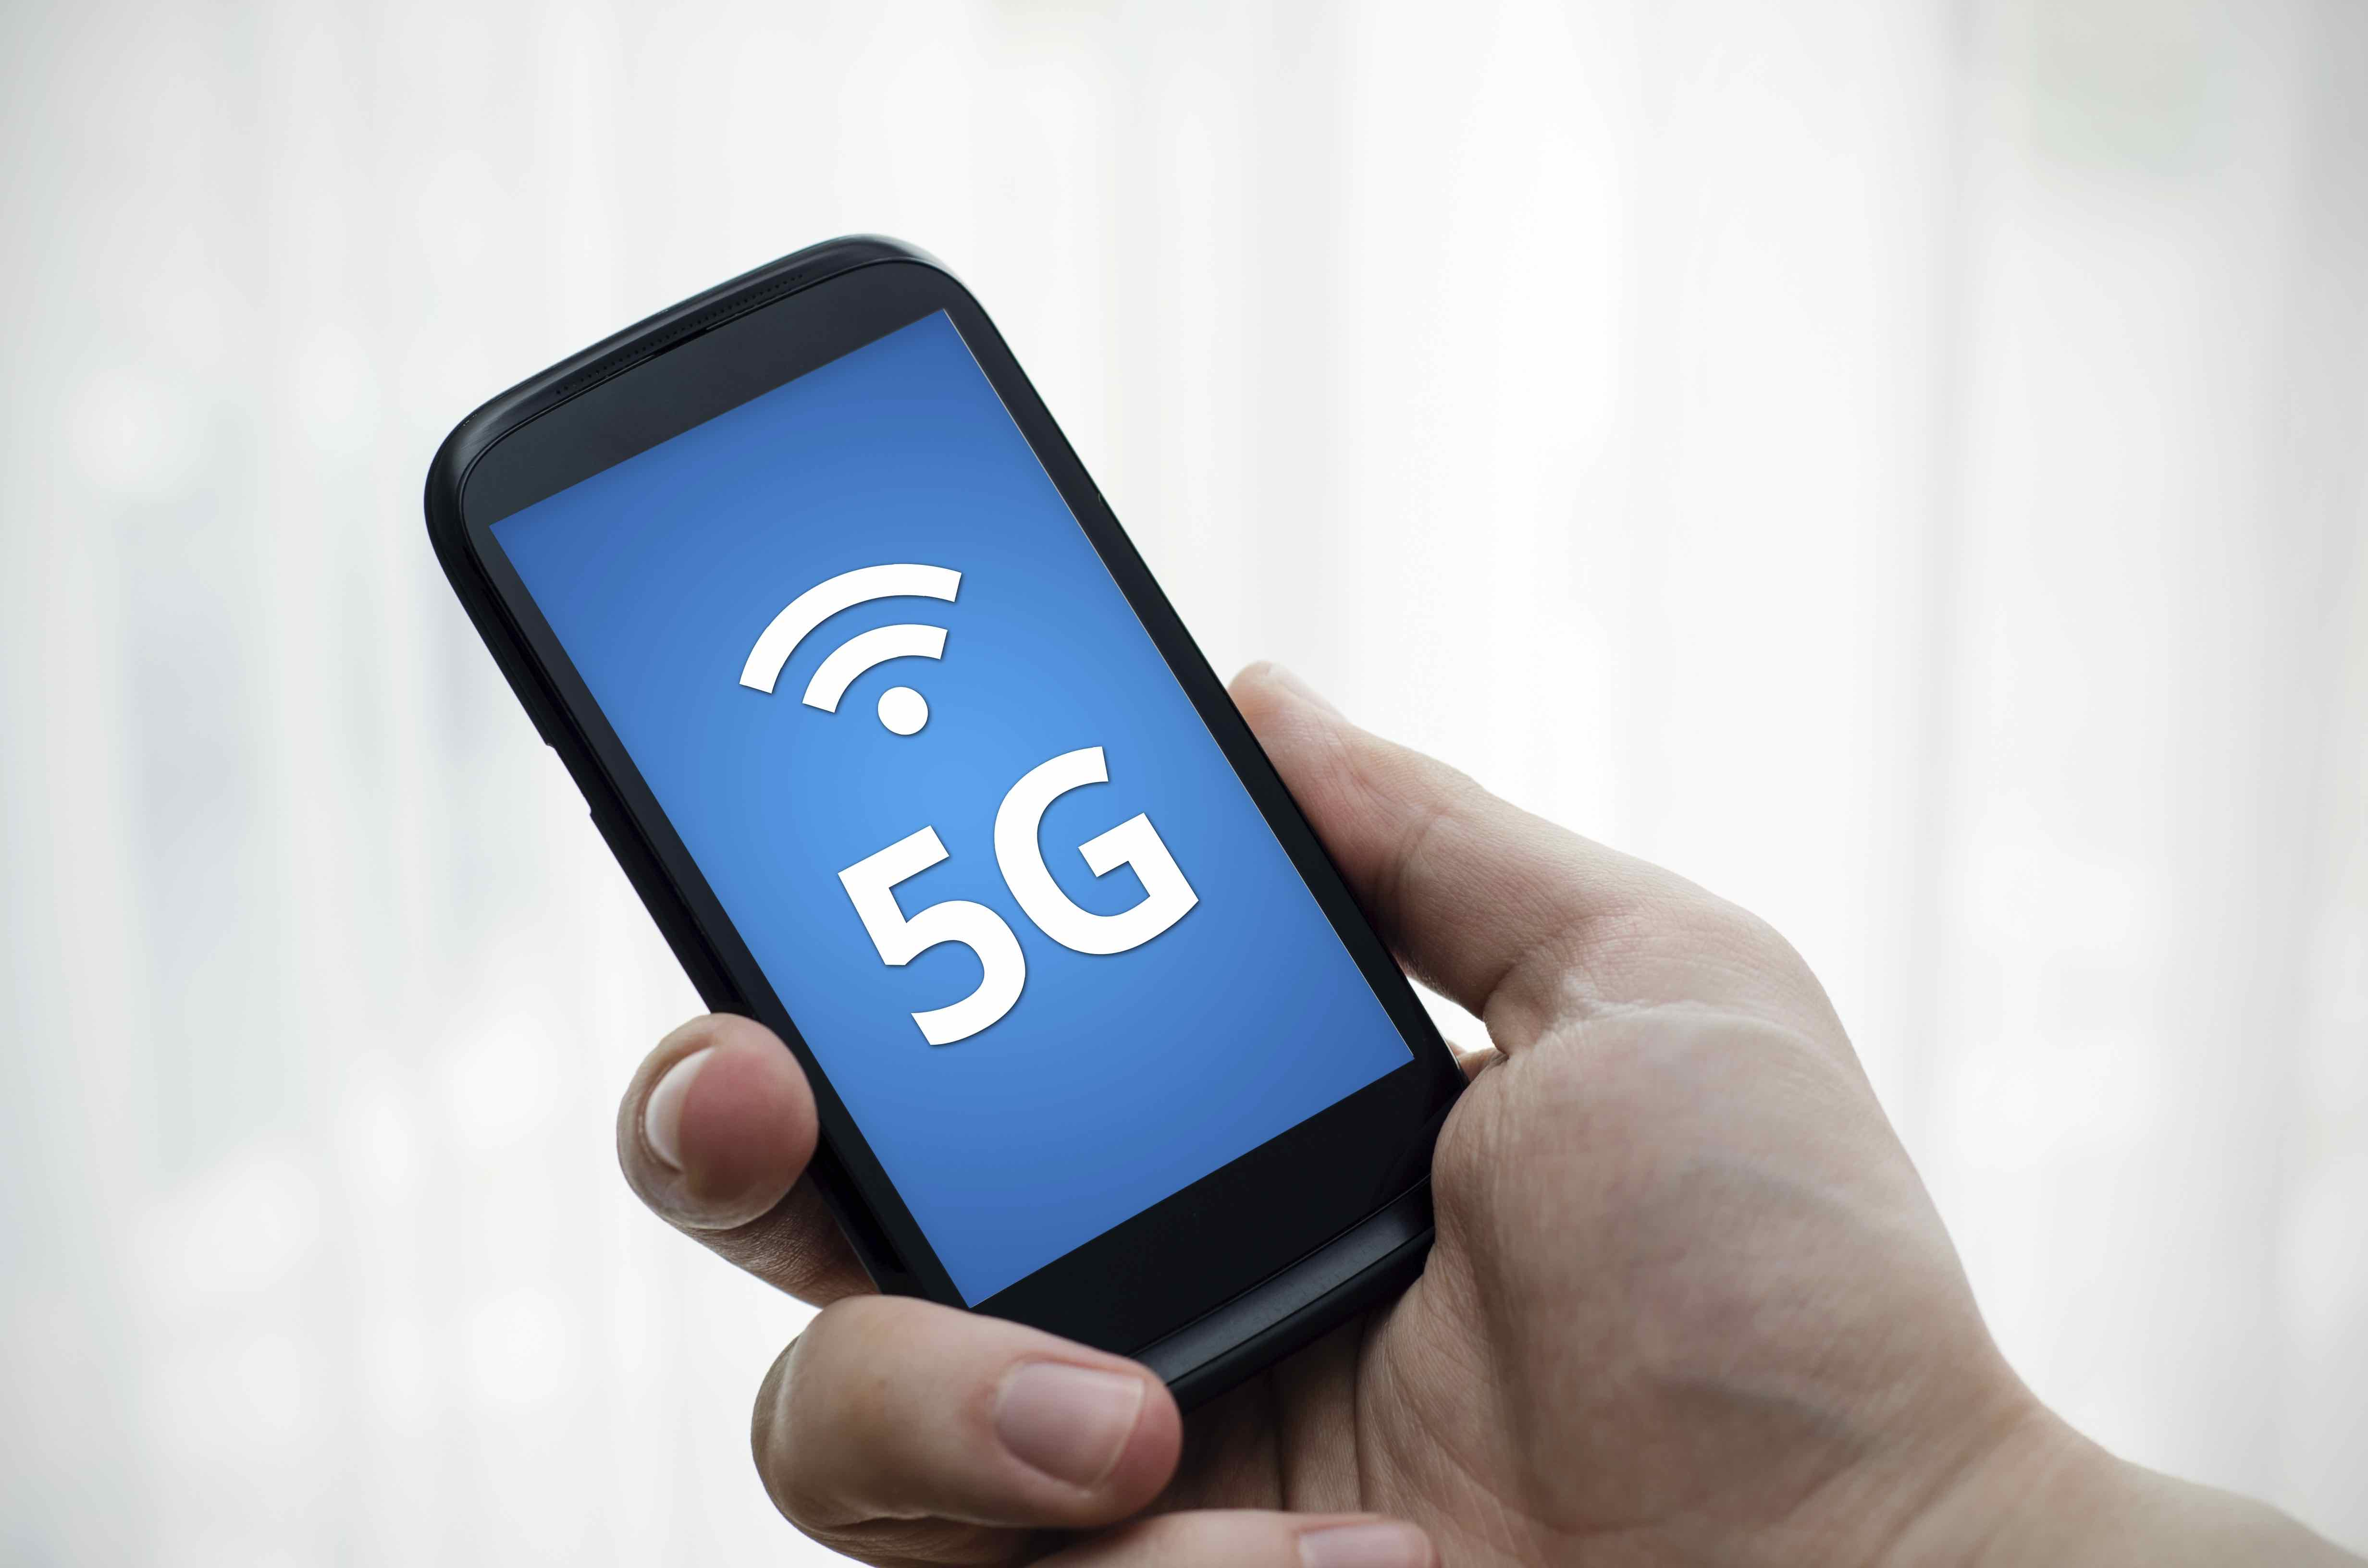 Mobile World Congress: 5G technology is 10-100 times faster than 4G.